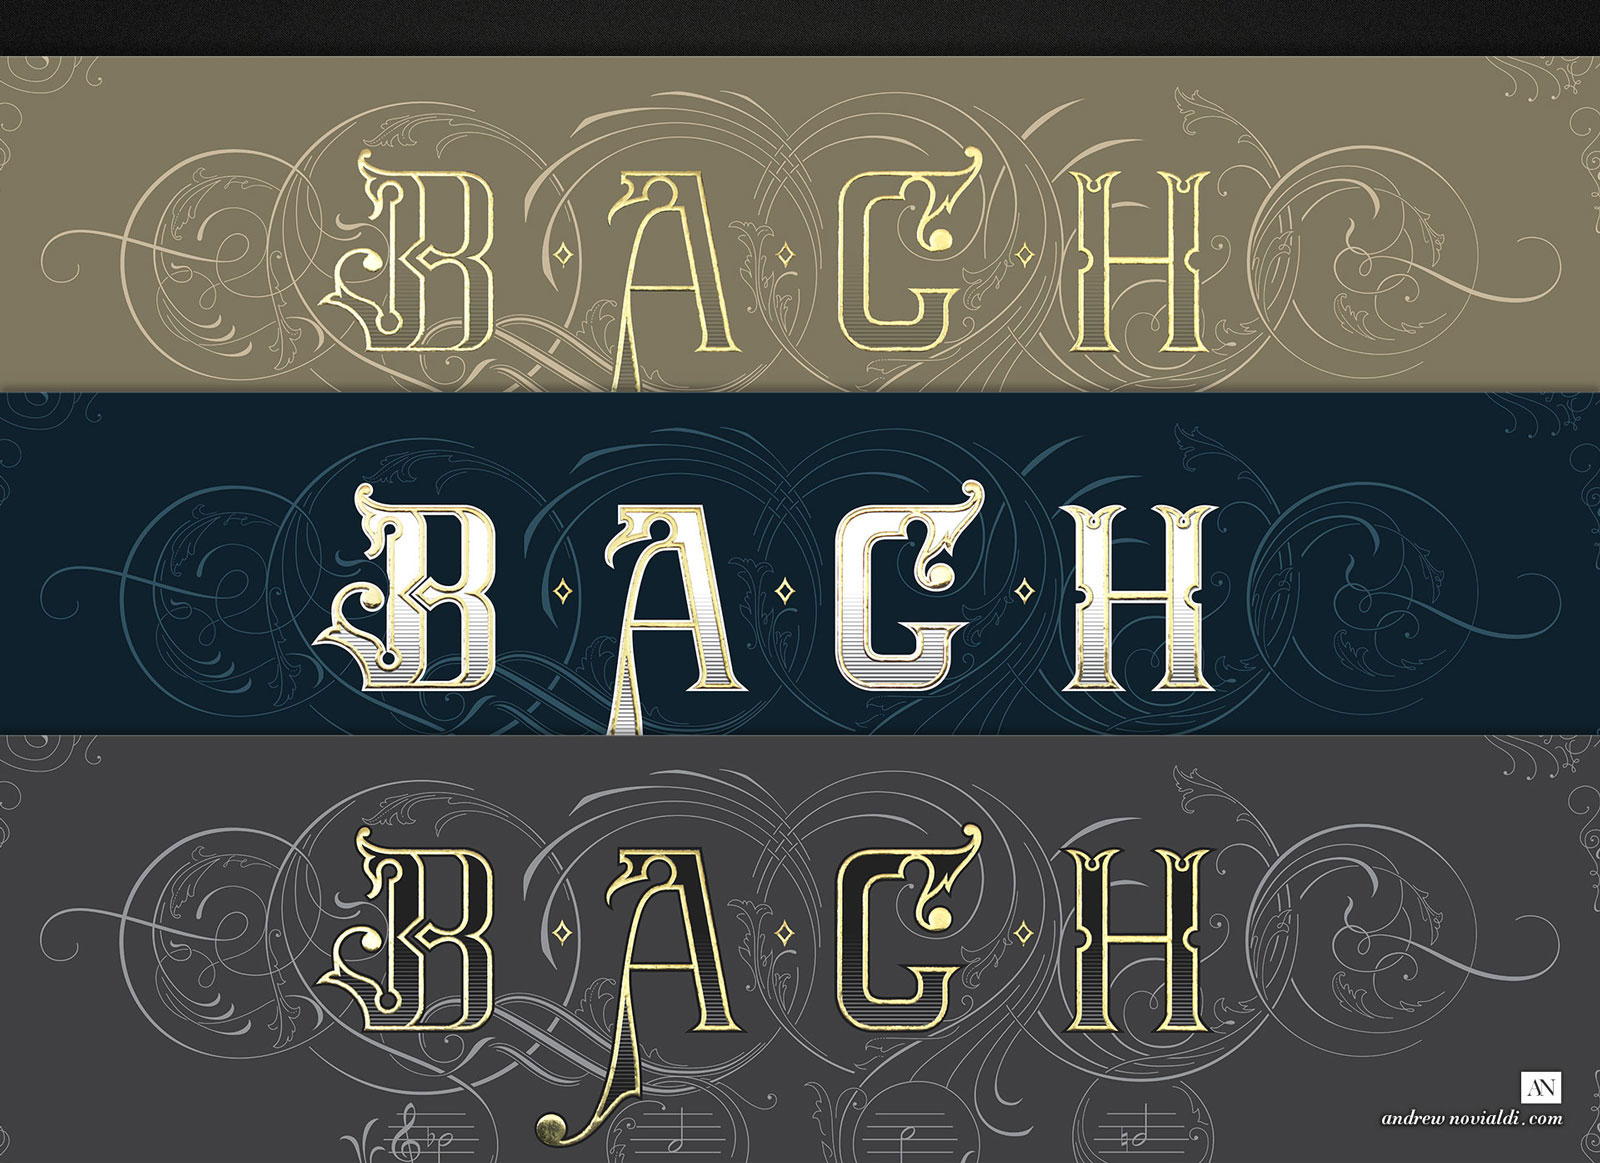 On The Theme of BACH Comes in Three Color Variant: Slate GRey, Golden Sand and Navy Blue